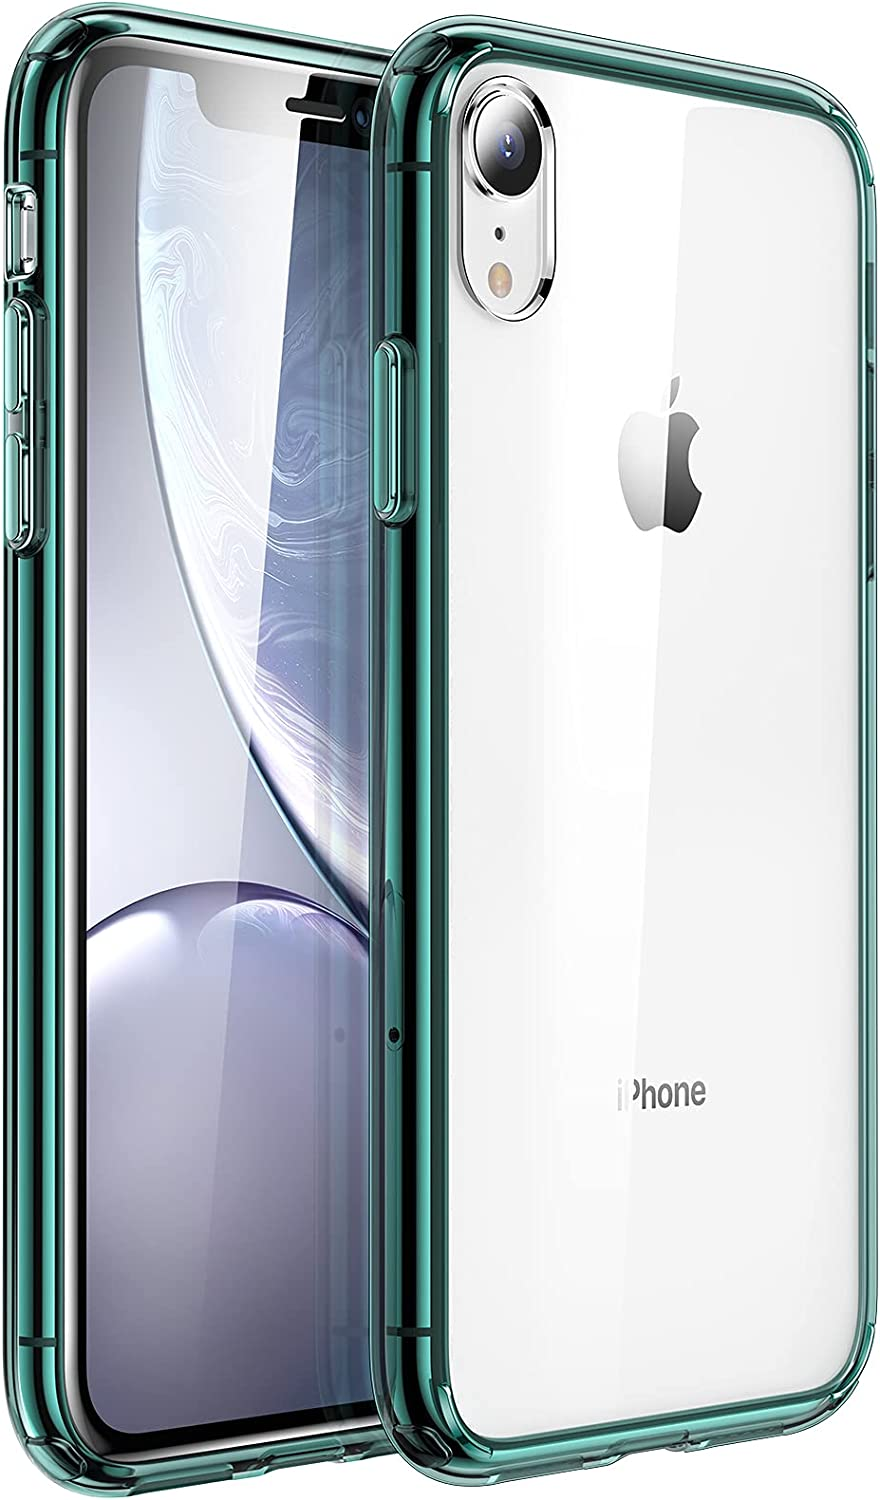 UNBREAKcable Phone Case for iPhone XR 6.1 Inch - [Anti-Yellow & Anti-Scratch] Ultra Clear Shockproof Hard PC Back & Soft TPU Bumper Protective Case for iPhone XR - Dark Green